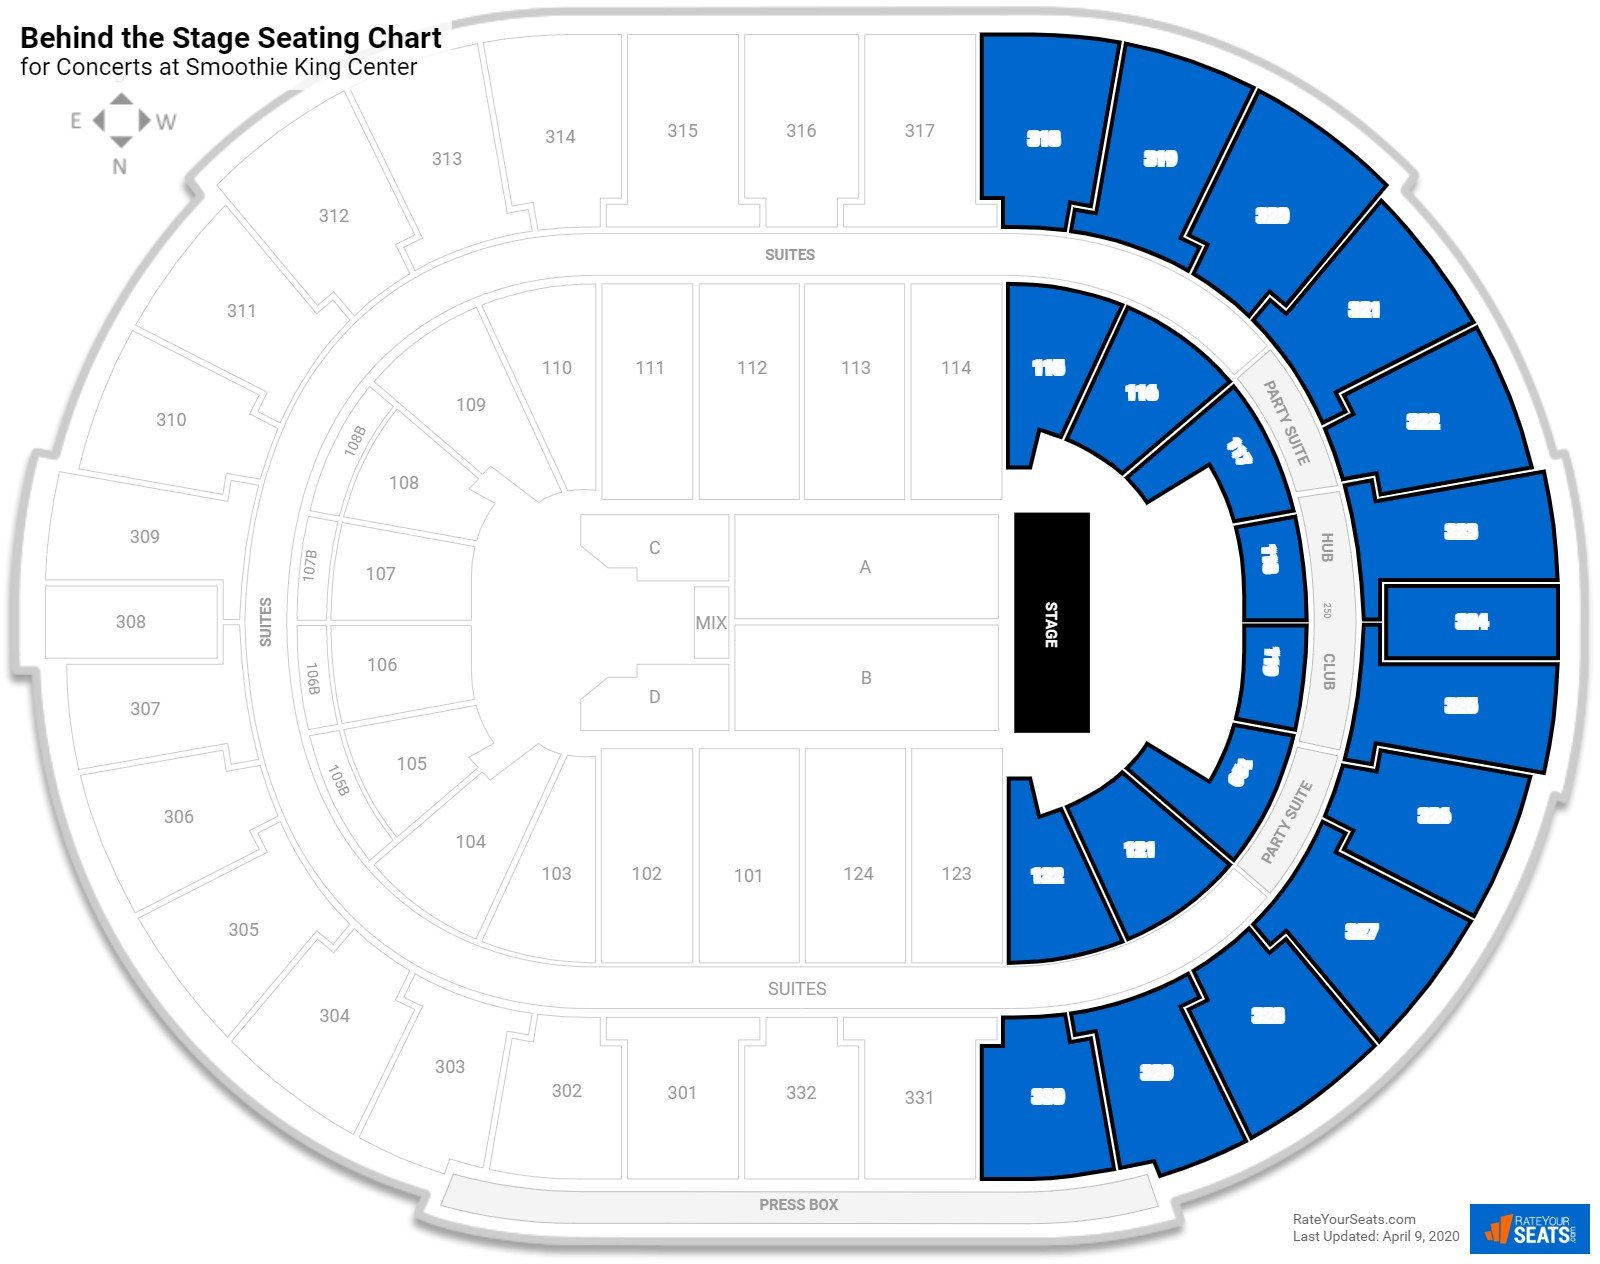 Smoothie King Center Behind The Stage Seating Chart